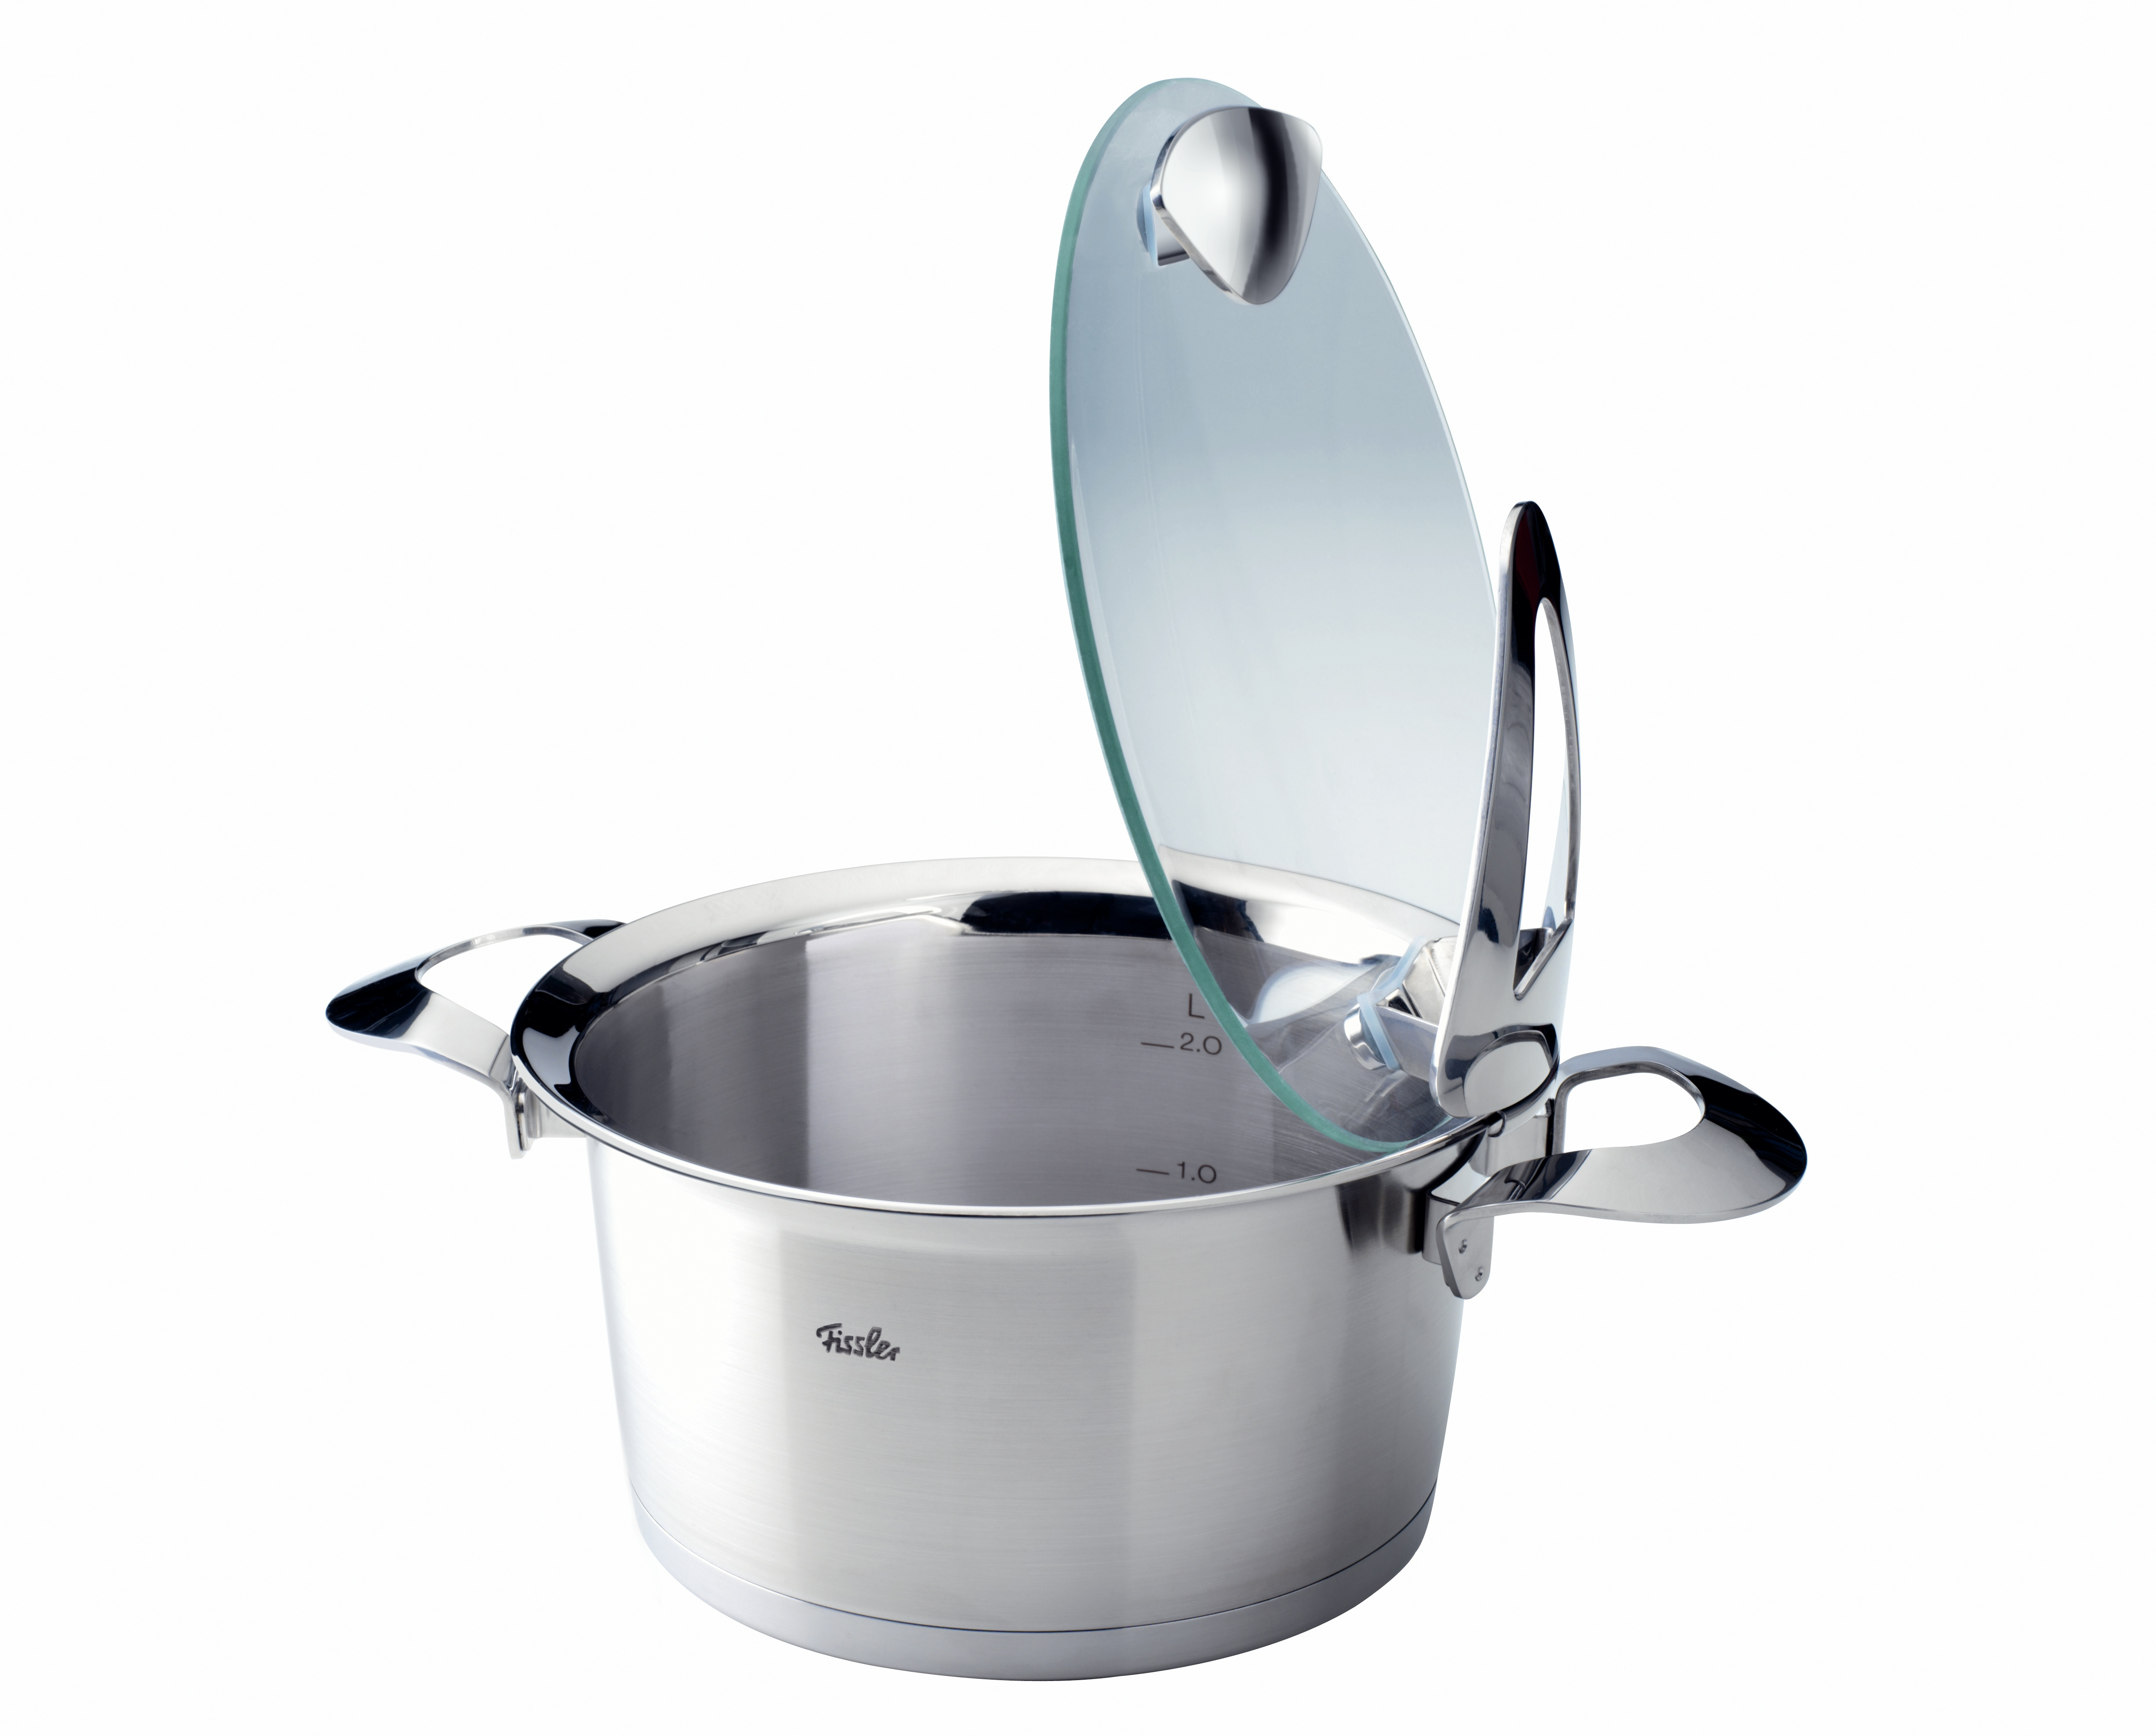 Fissler Pots And Pans Reviews Zef Jam